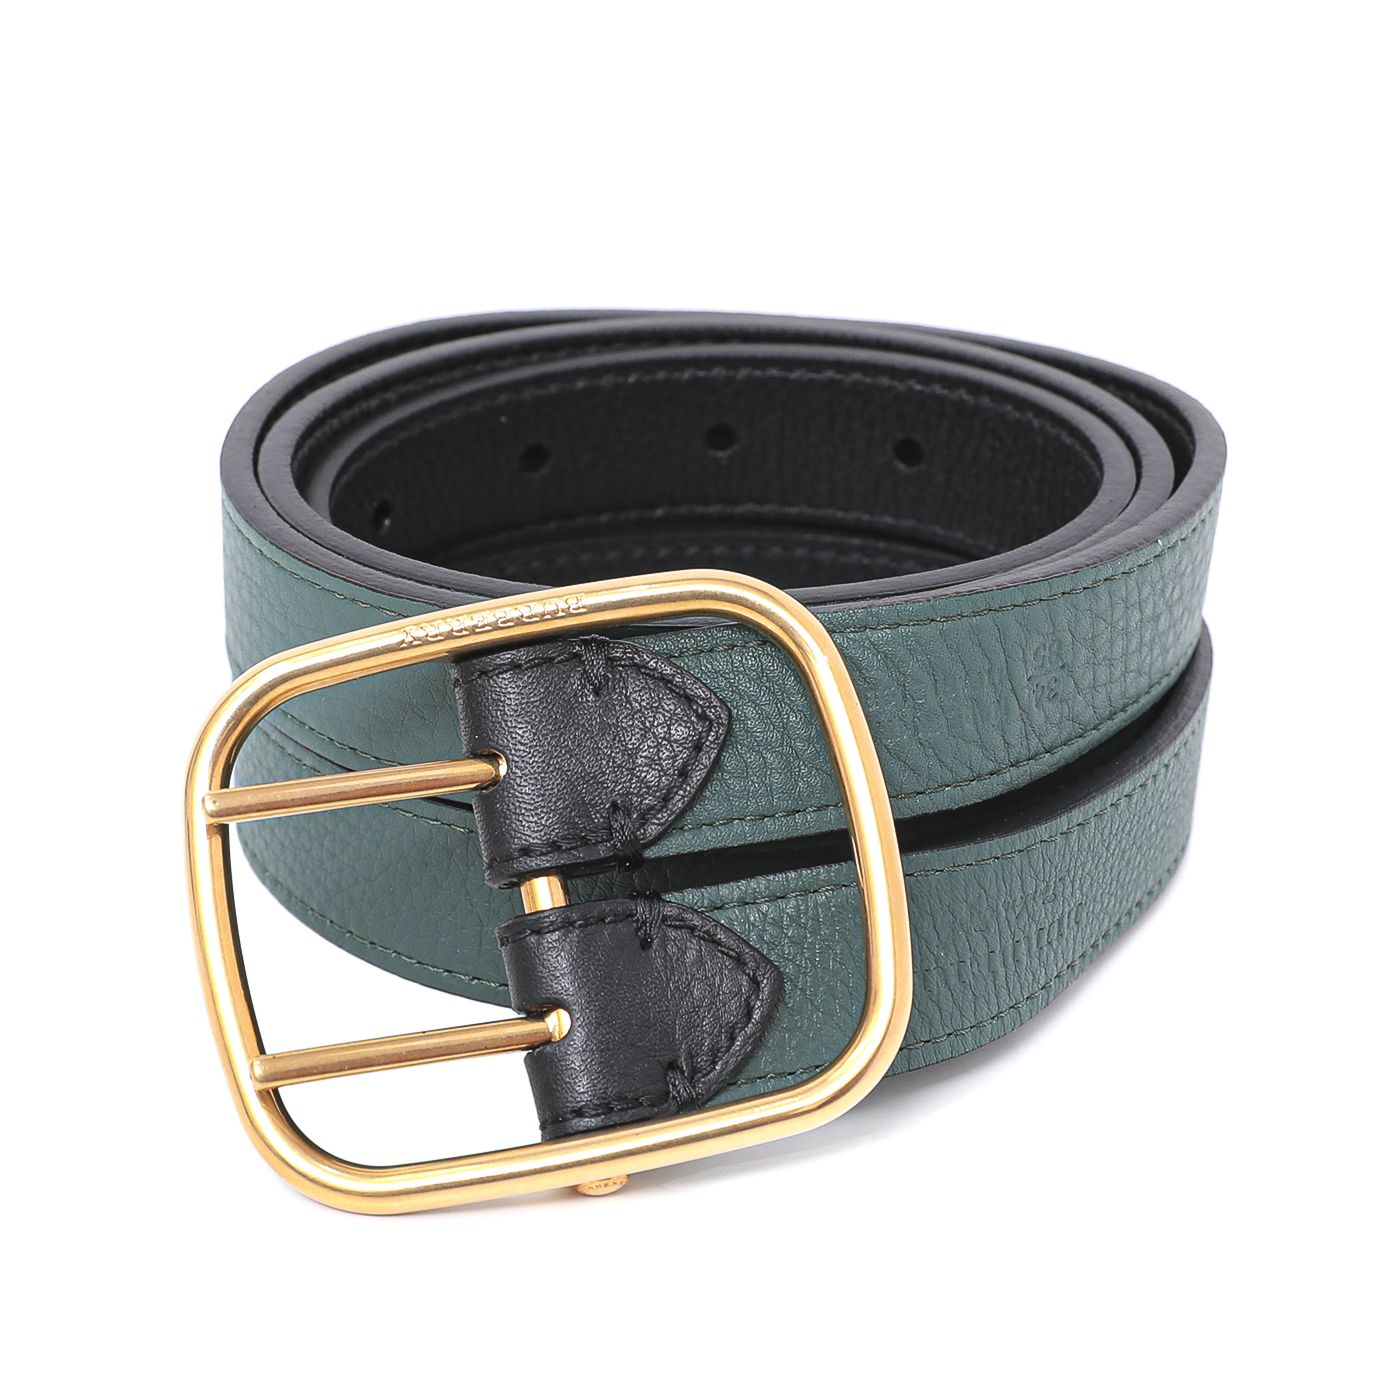 Burberry Bicolor Lynton Double Strap Belt 34